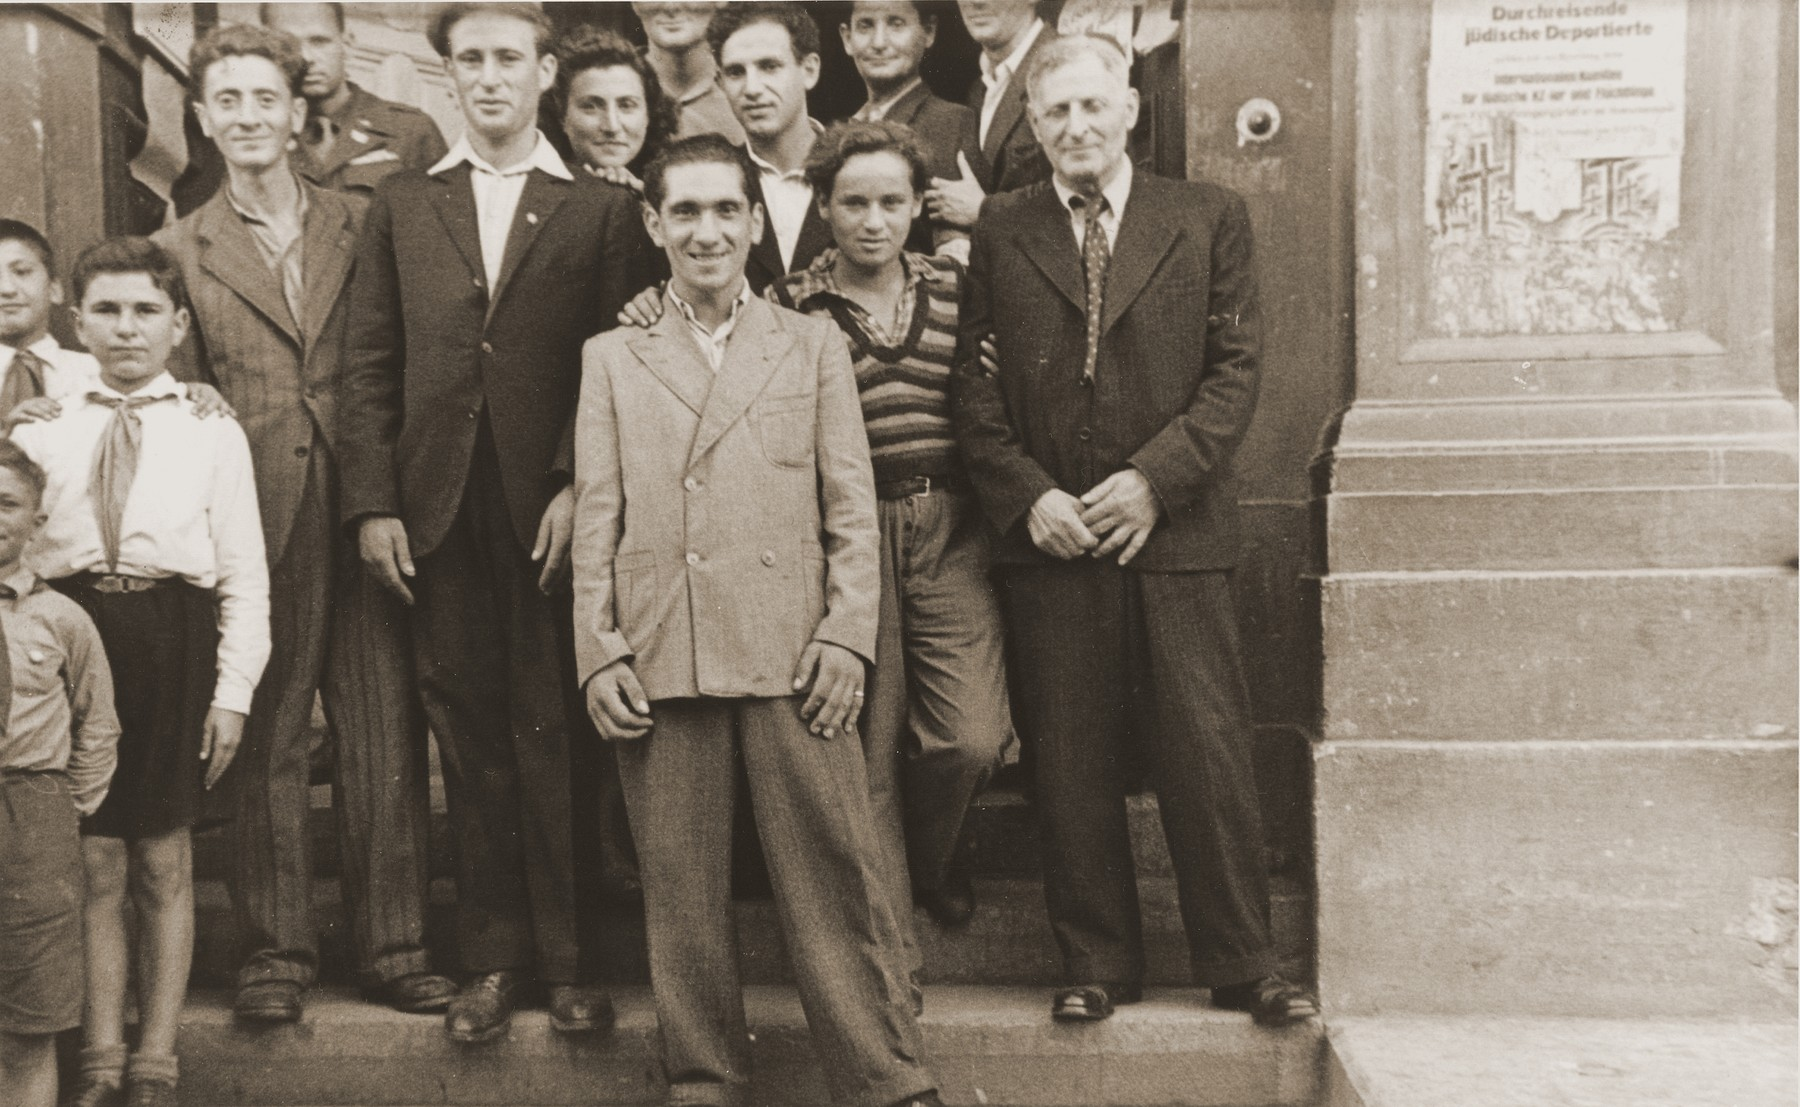 Jewish DPs stand on the steps of the Rothschild Hospital to greet the delegation from the United Nations Special Commission on Palestine.  Abel Birman, father of the donor, stands on the far right.  .   Between July 1945 and May 1948 approximately 250,000 Jewish holocaust survivors fled from eastern Europe to displaced persons' camps in Germany, Austria and Italy, in what was the largest organized, illegal, mass movement in modern times.  Both the movement and the organization that directed its flow are known by the name Bricha [flight]. The Bricha was born when groups of Zionist partisan survivors from eastern Europe, who had attempted unsuccessfully to reach Palestine via Romania, made contact with Jewish Brigade troops stationed in Italy.  The soldiers offered them the possibility (although limited and illegal) for reaching Palestine via Italy.  Together they established the Bricha in Poland, an organization that quickly came under the direction of Haganah (Jewish underground) emissaries from Palestine.  Bricha guides led groups of survivors on specially laid out routes from Poland to Italy and Germany.  The transit expenses were covered by the American Jewish Joint Distribution Committee, which also provided food and shelter along the routes.  Generally, the Soviet authorities turned a blind eye to the illegal migration, the British were hostile, and the Americans were accepting, because they could not use force to stop the flow.  The largest wave of the Bricha occurred in the two months following the Kielce pogrom (July 4, 1946) in which 42 Jews were killed in the wake of a ritual murder charge.  Over 90,000 holocaust survivors fled in a movement so sudden that the organization could not contain the flow.  The goal of the survivors was to reach the American zone of occupation, where they could seek shelter in DP camps until they were able to find the means to emigrate to Palestine or the New World.